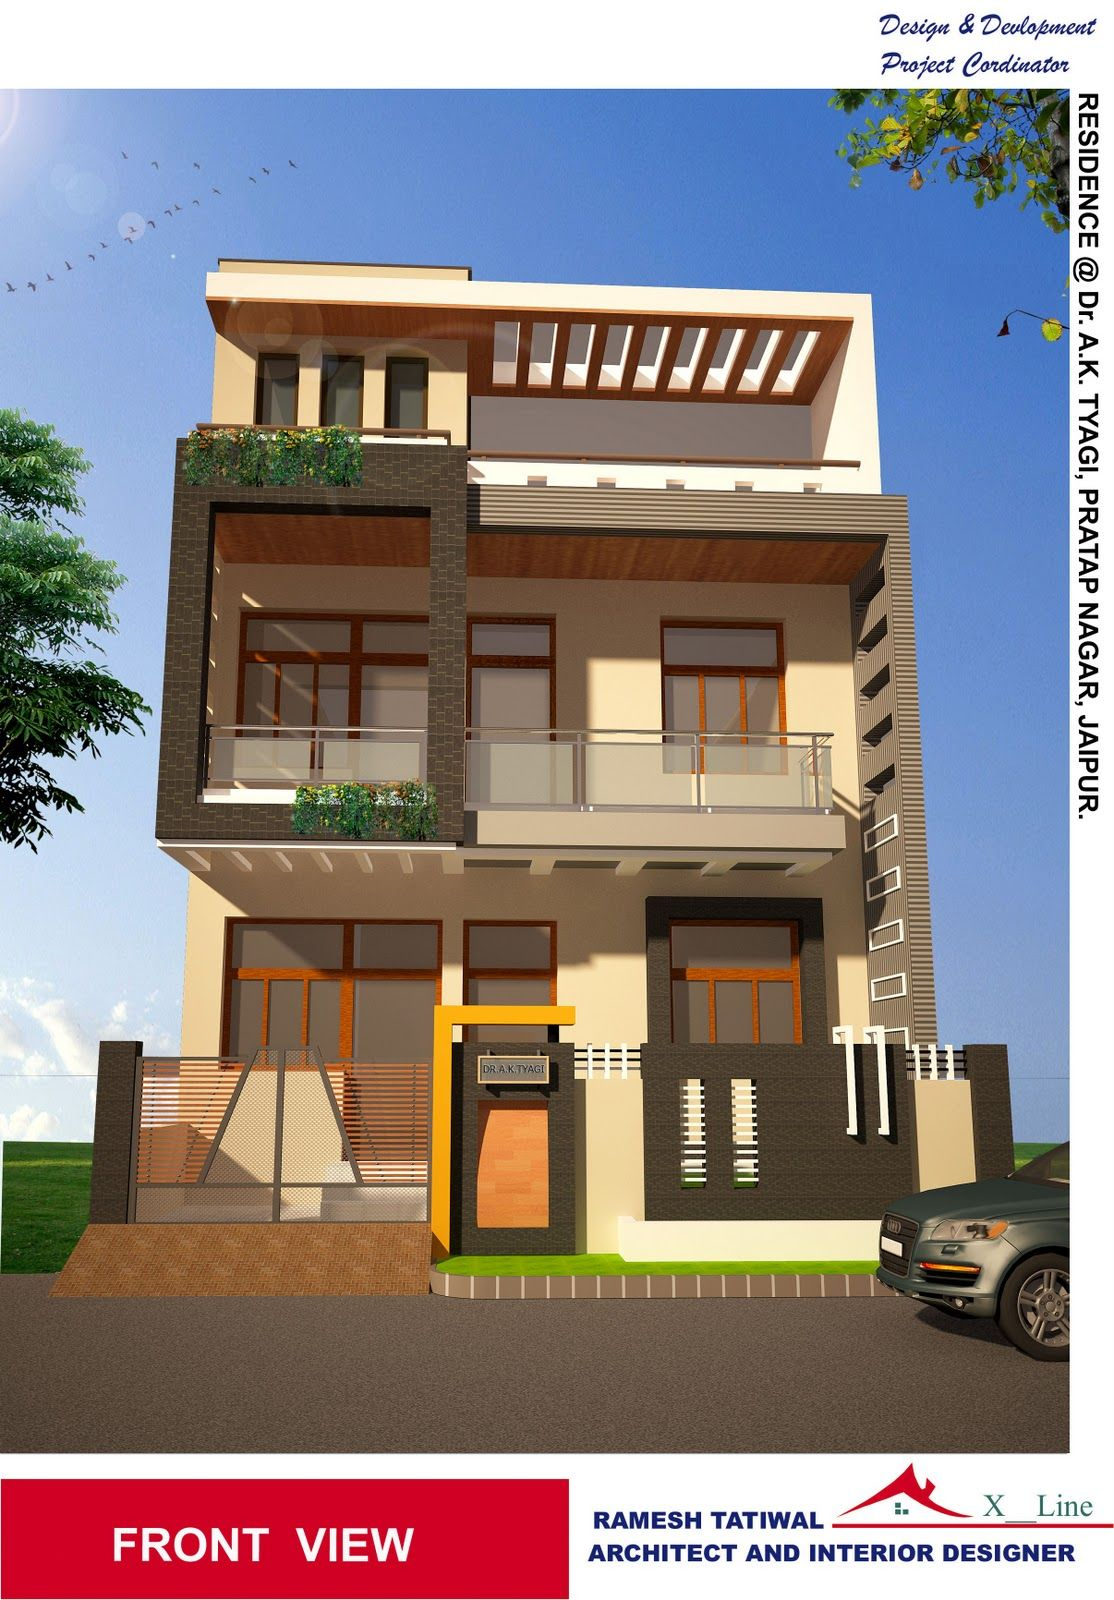 India Homes Design Housedesigns Modern Indian Home Architecture Design From